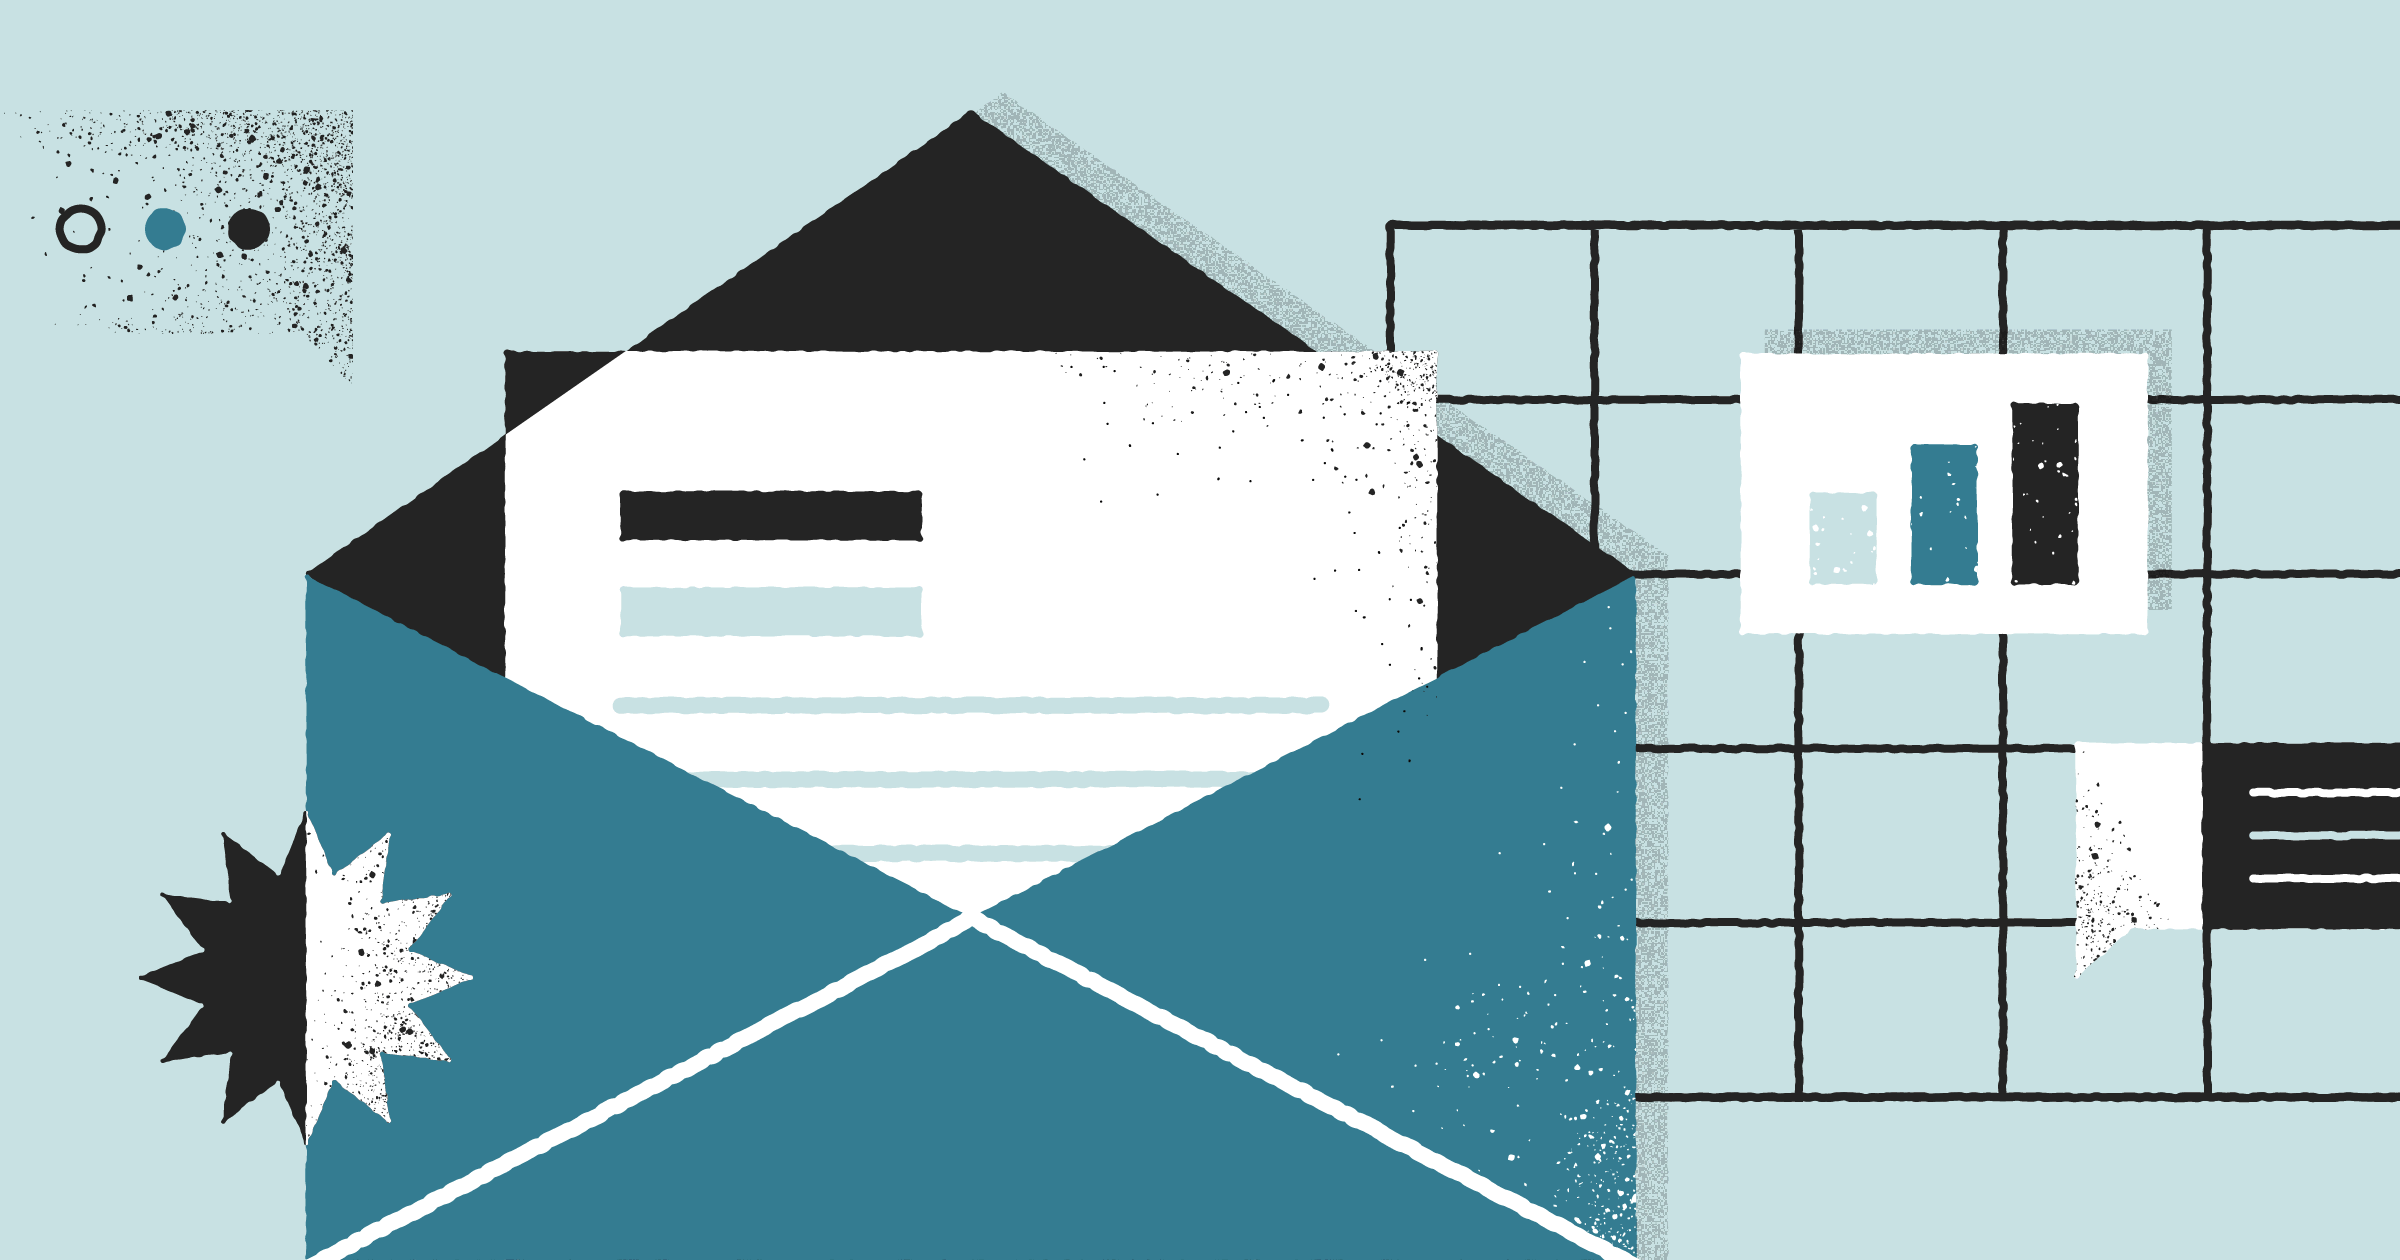 Top 7 tools to improve your outreach game: email outreach tools and tricks as discussed by the co-founder of Lavender